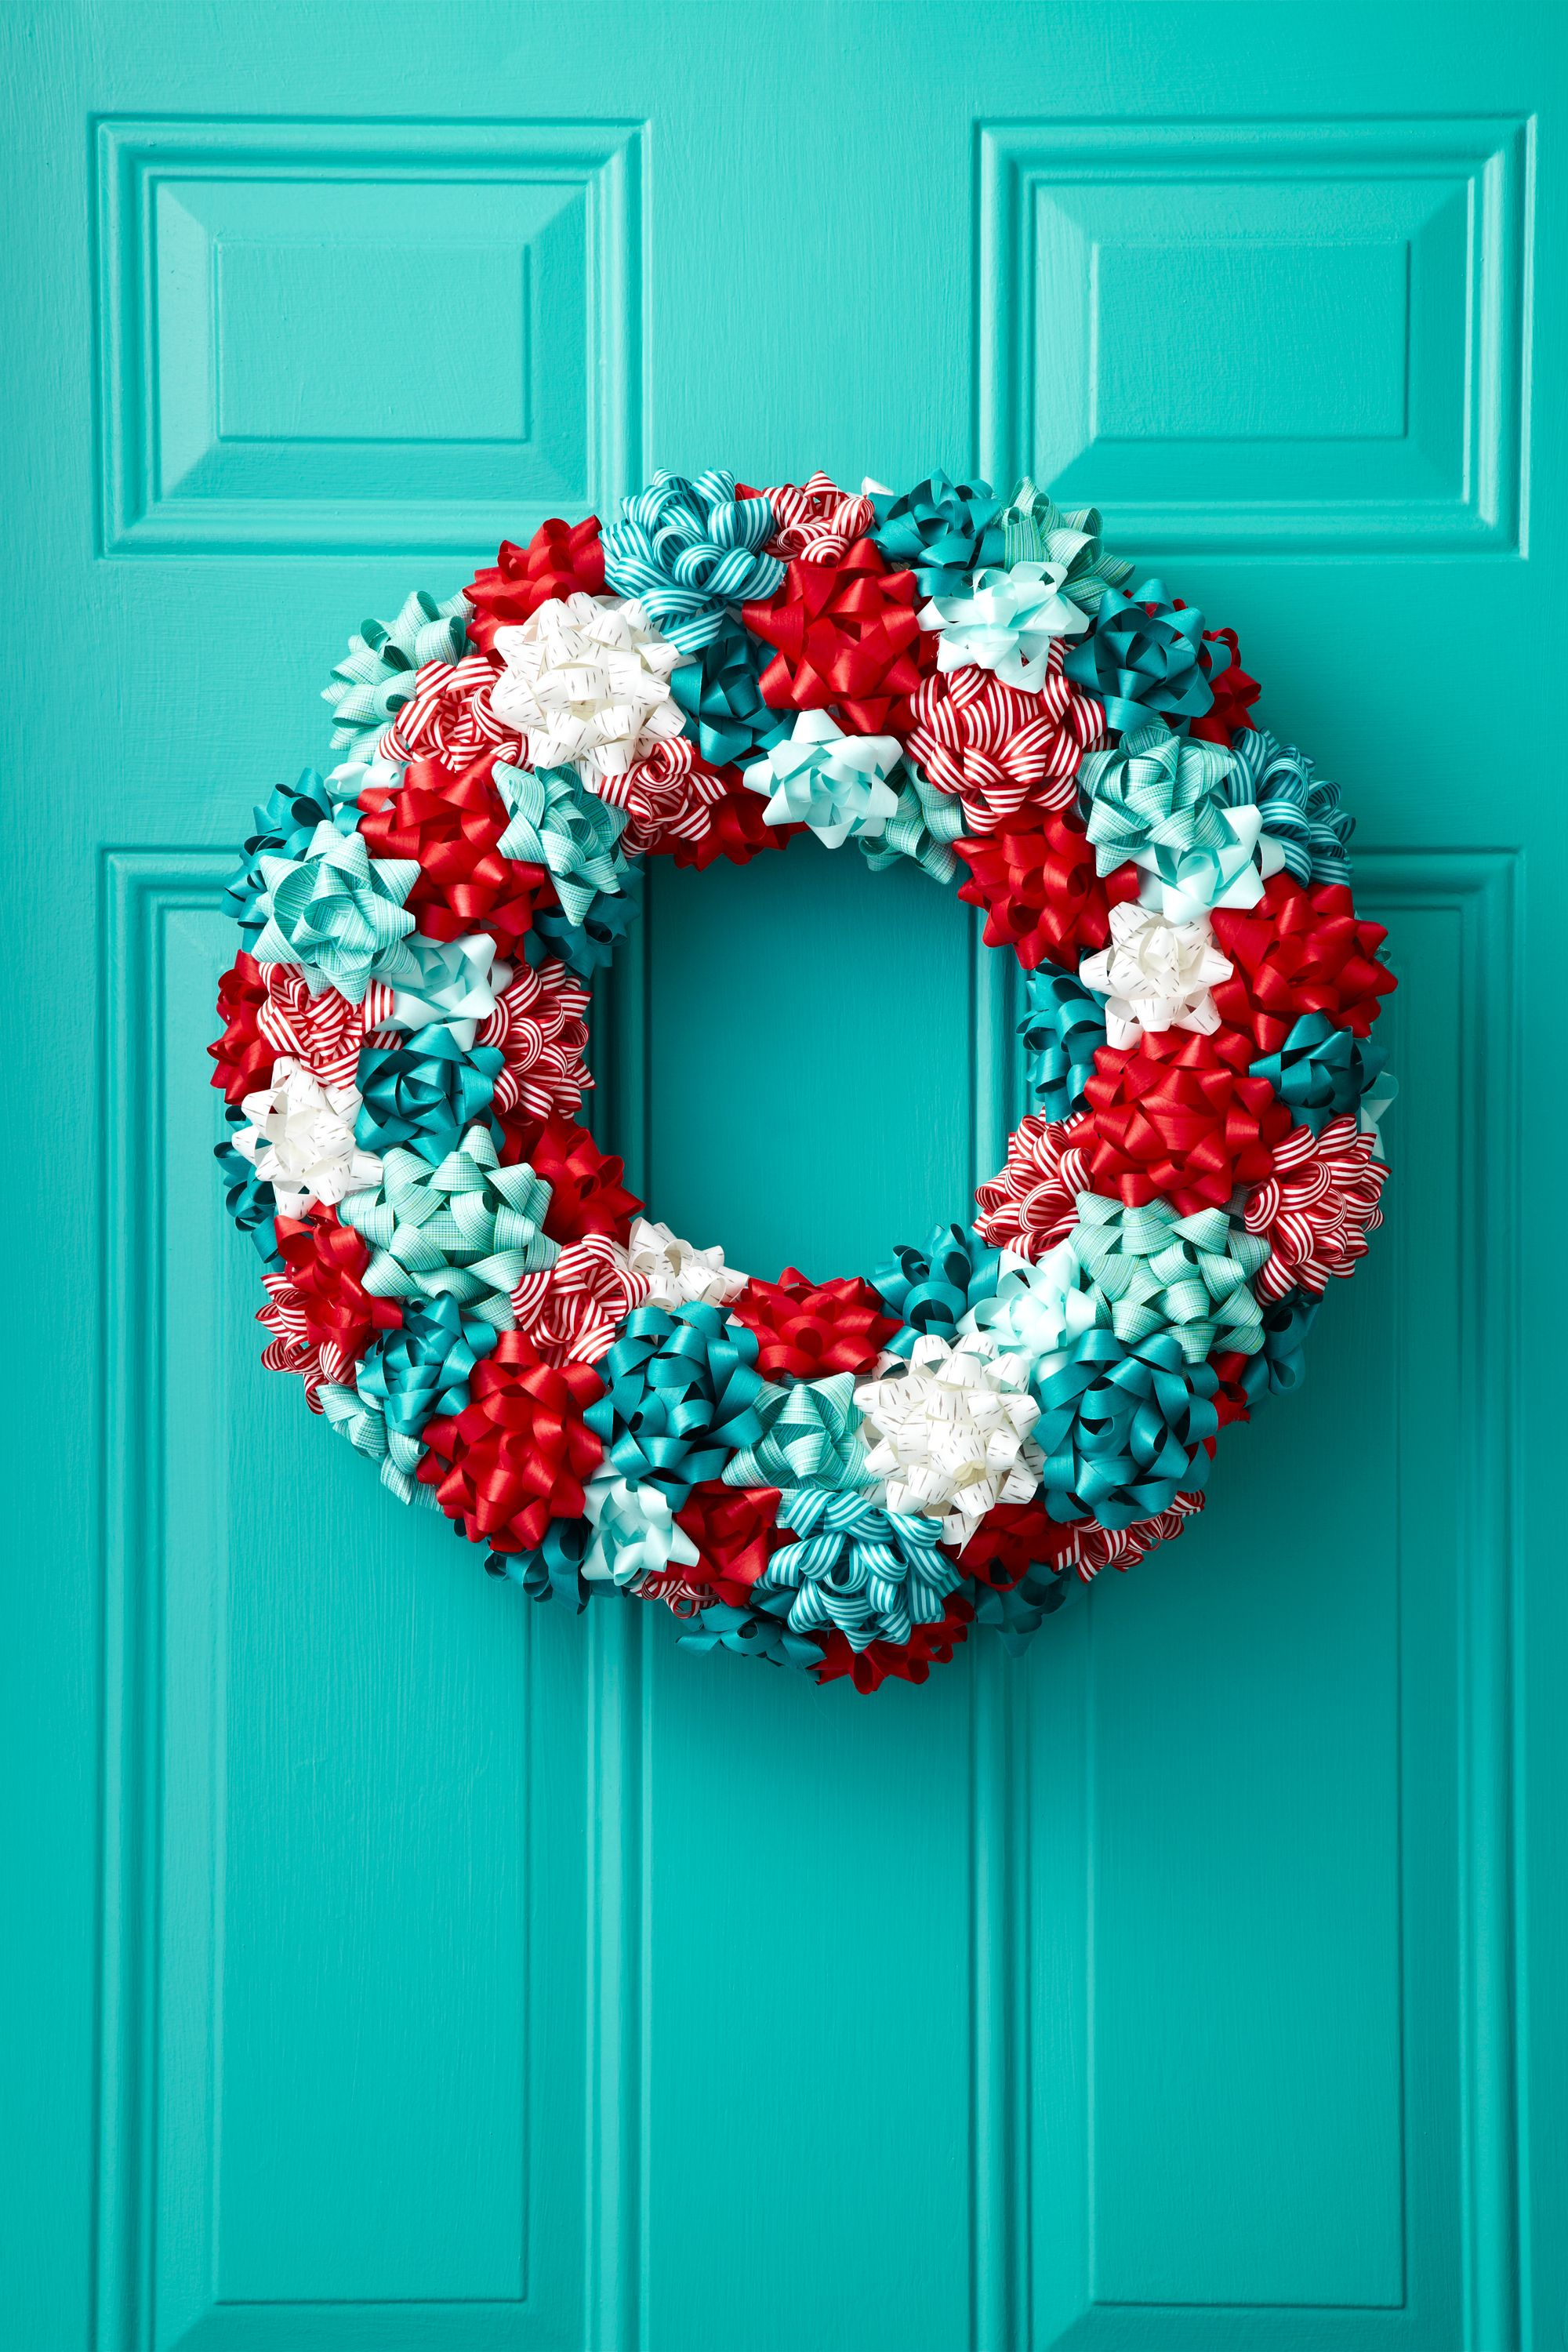 47 DIY Christmas Decorations That Will Add Cheer to Your Home ...